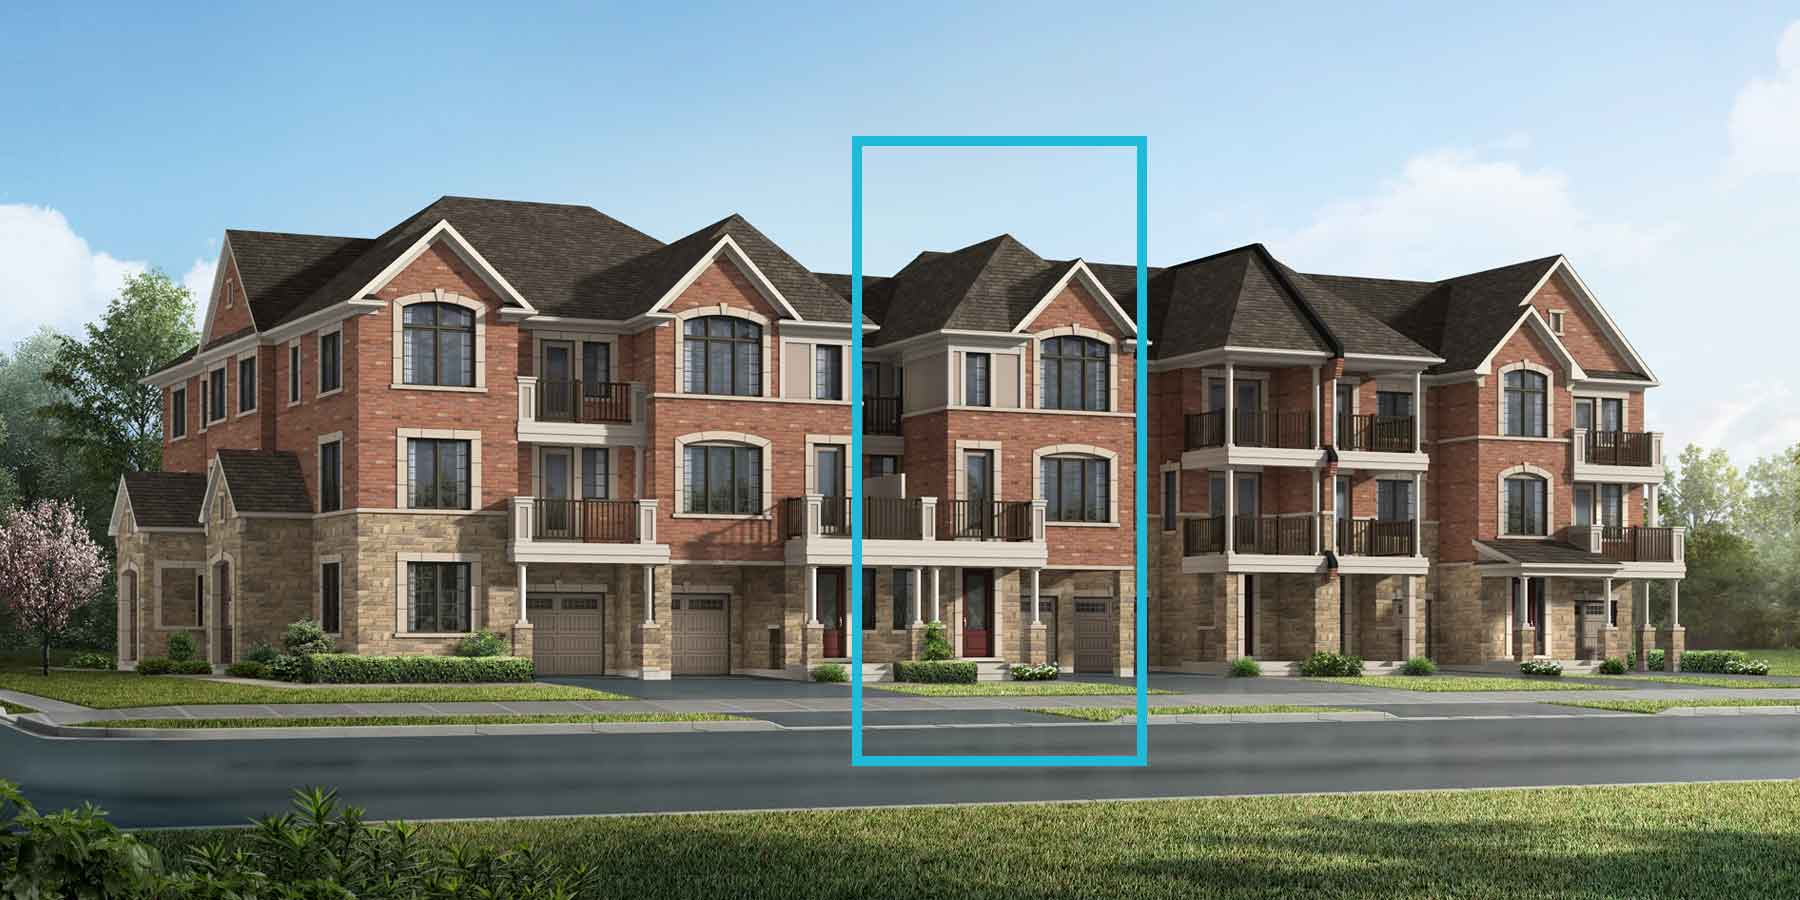 Honey Plan TownHomes at Springwater in Markham Ontario by Mattamy Homes